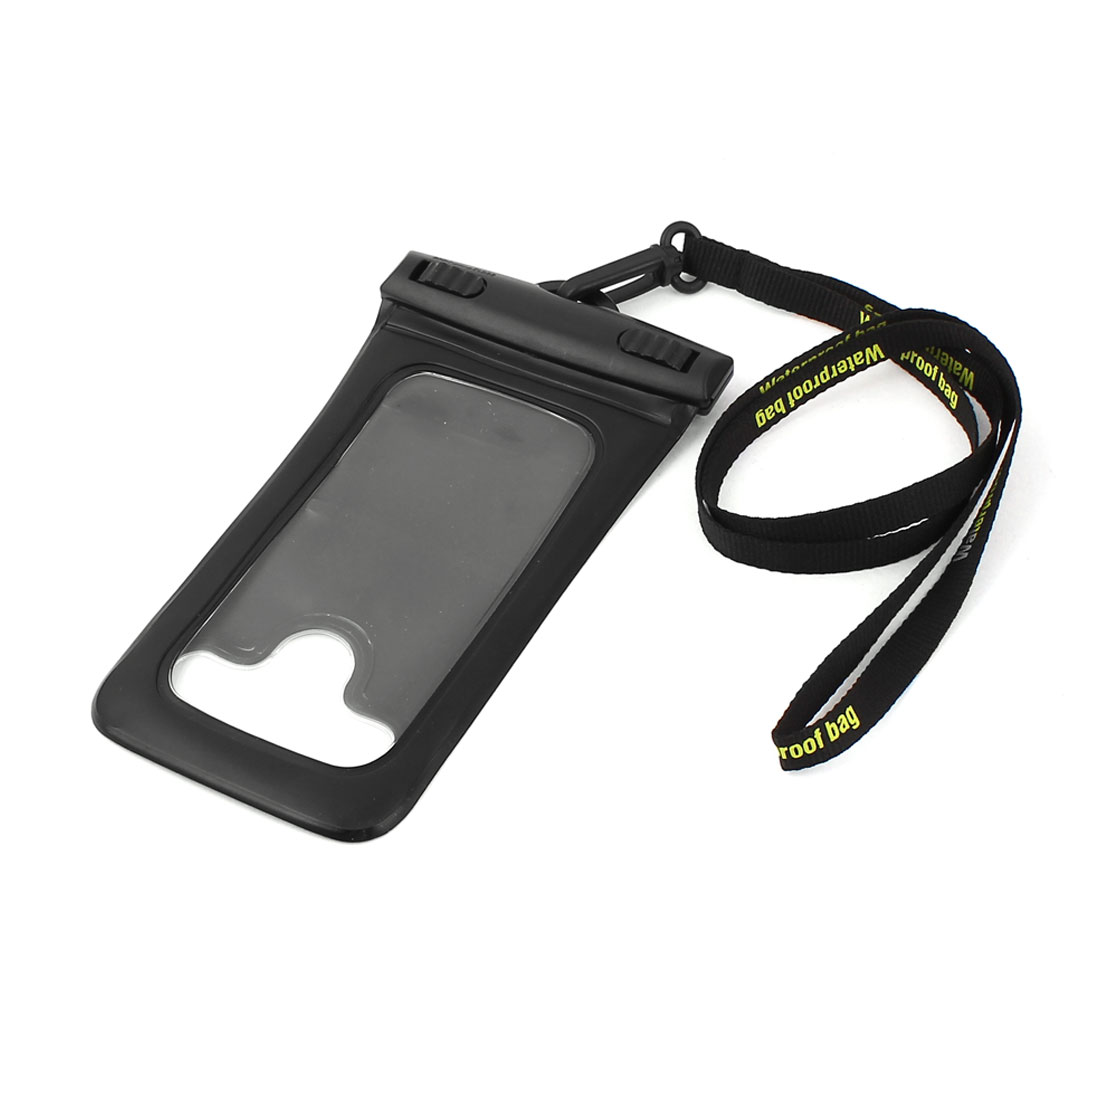 Black Cellphone Smartphone Mobile Phone Waterproof Pouch Protector Bag w Neck Strap Armband